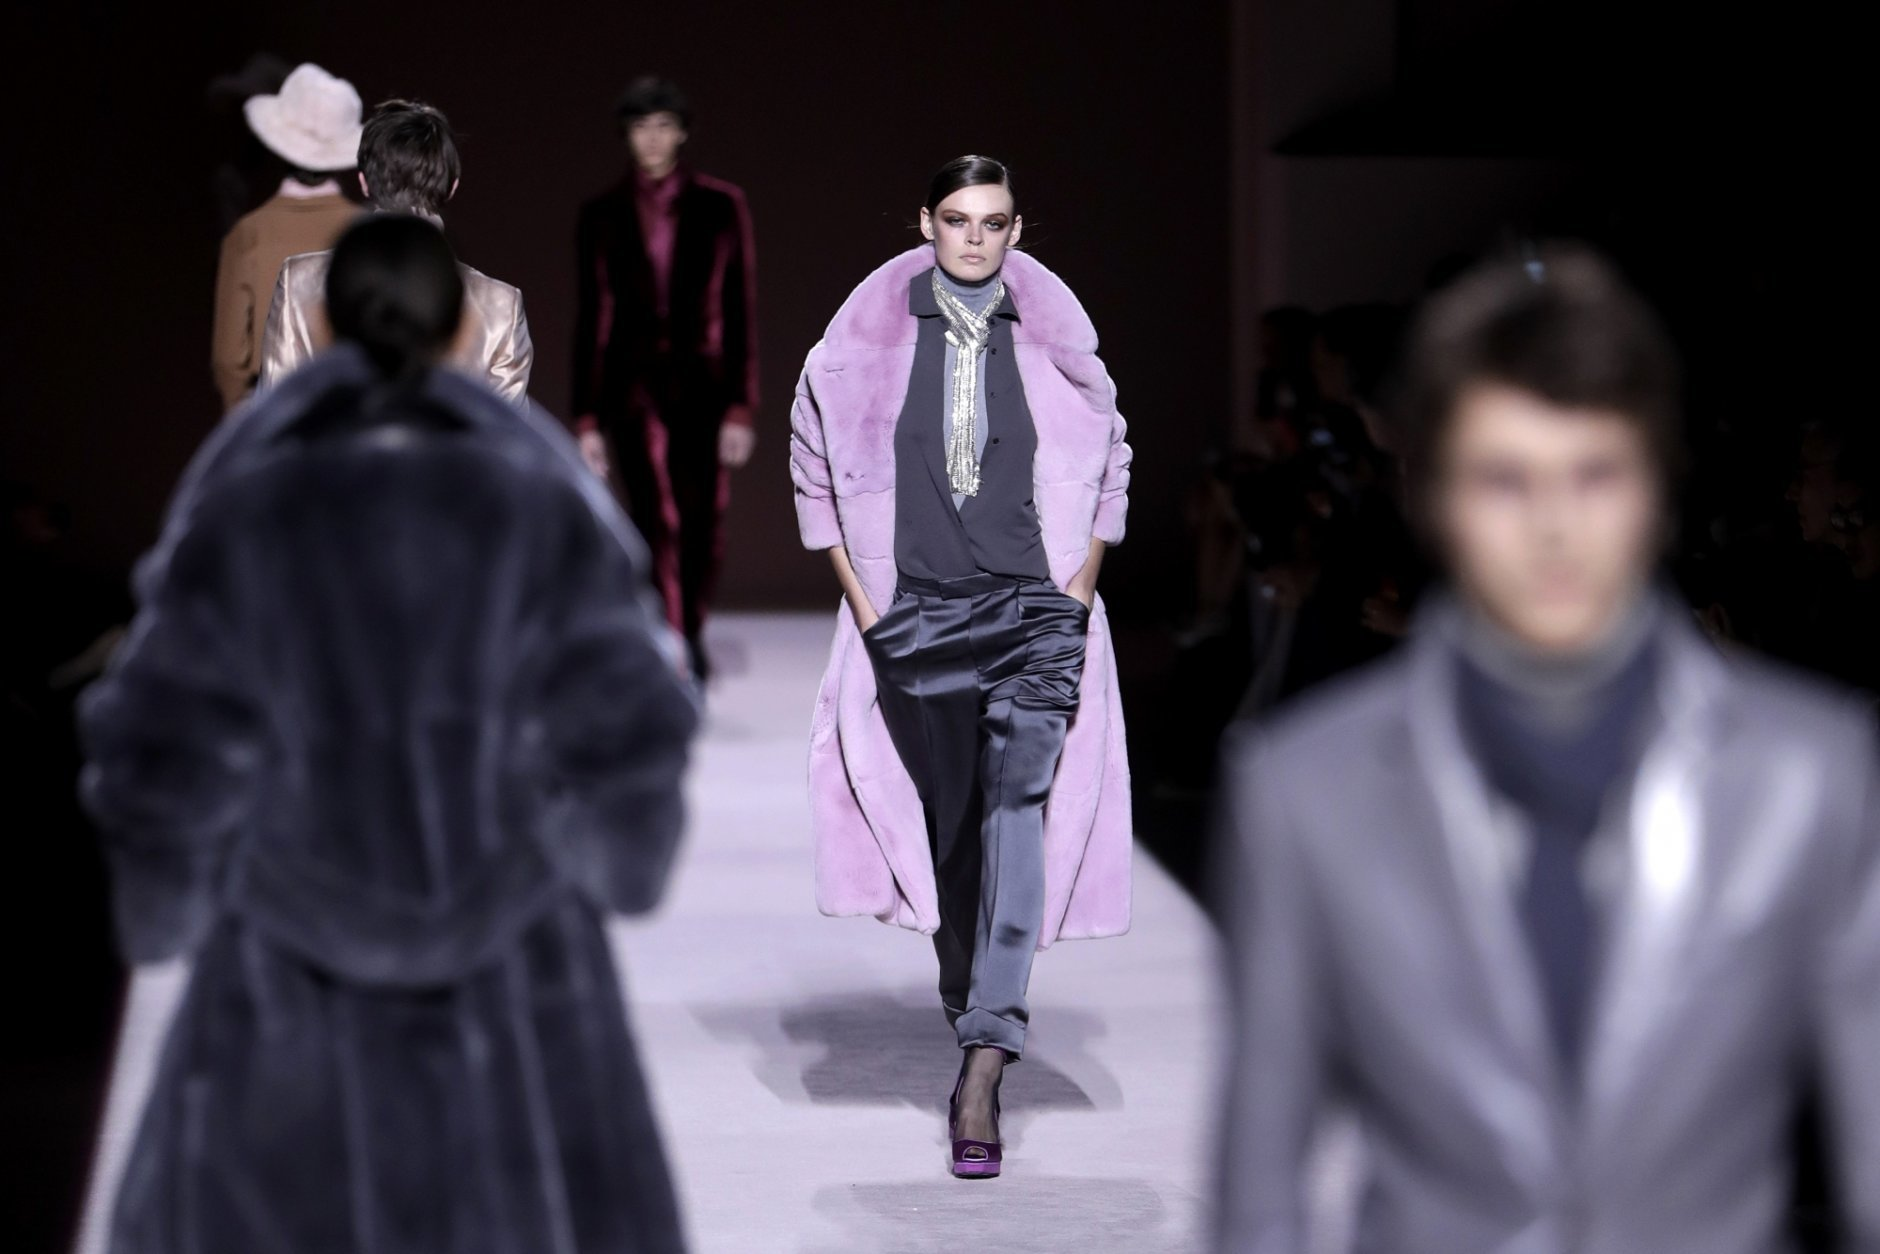 Fashion from the Tom Ford collection is modeled during Fashion Week, Wednesday, Feb. 6, 2019, in New York. (AP Photo/Julio Cortez)